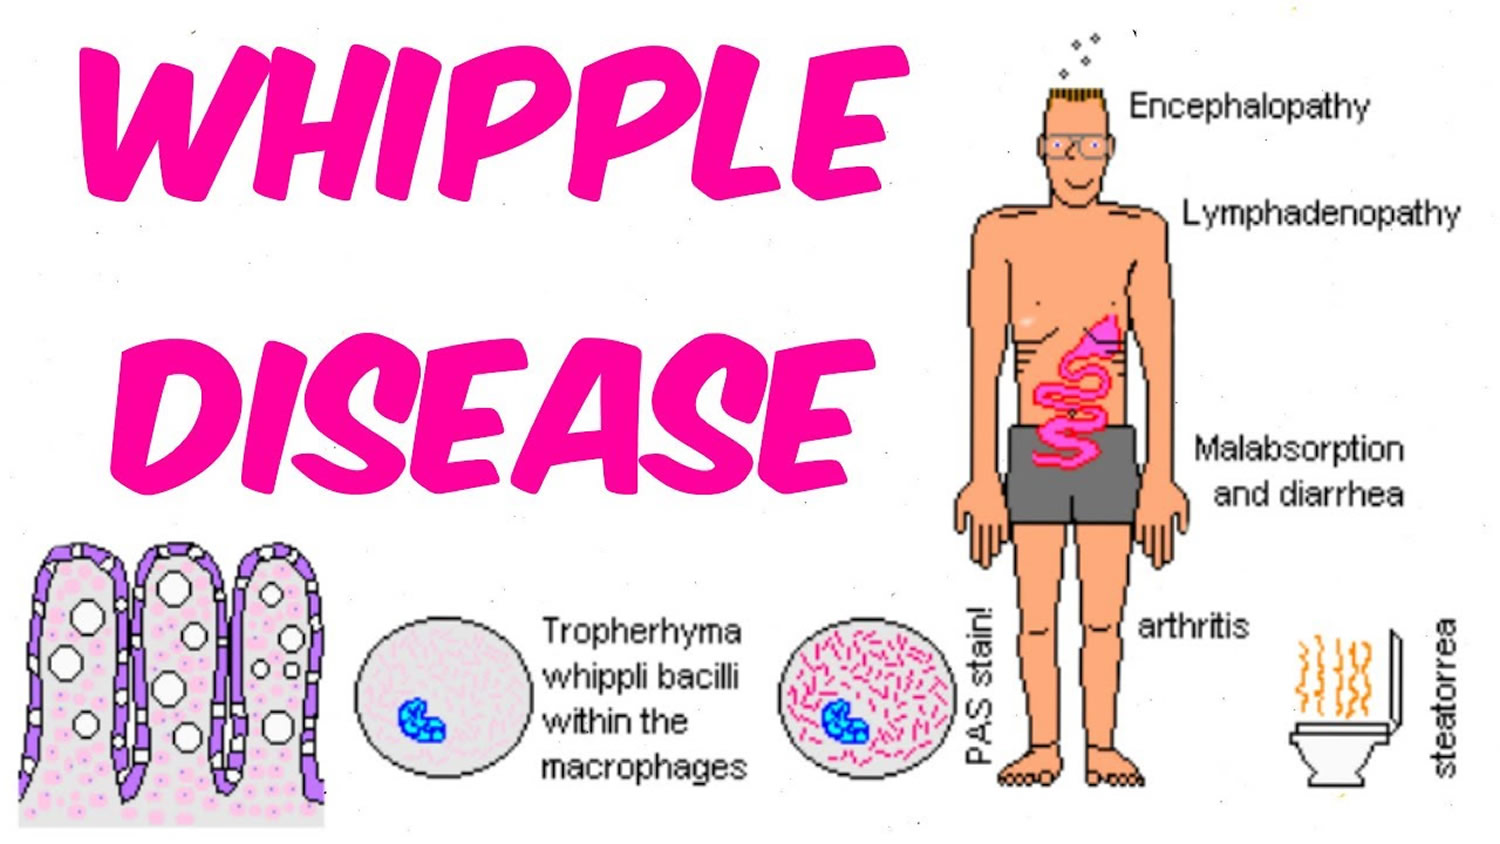 What Is Whipple's Disease